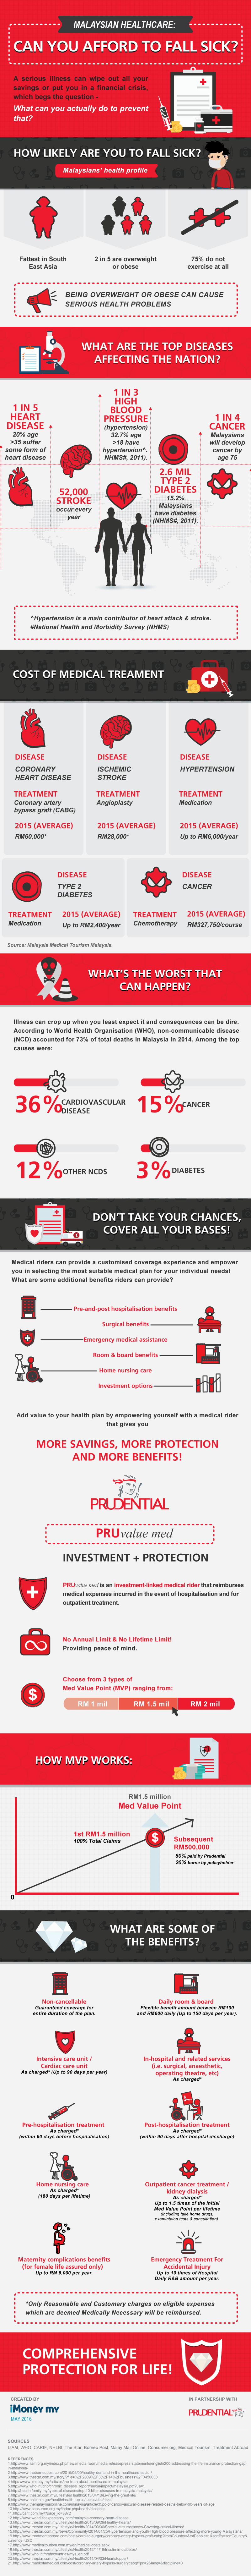 [Client-Prudential]-Can-you-afford-to-fall-sick-(infographic) (1)